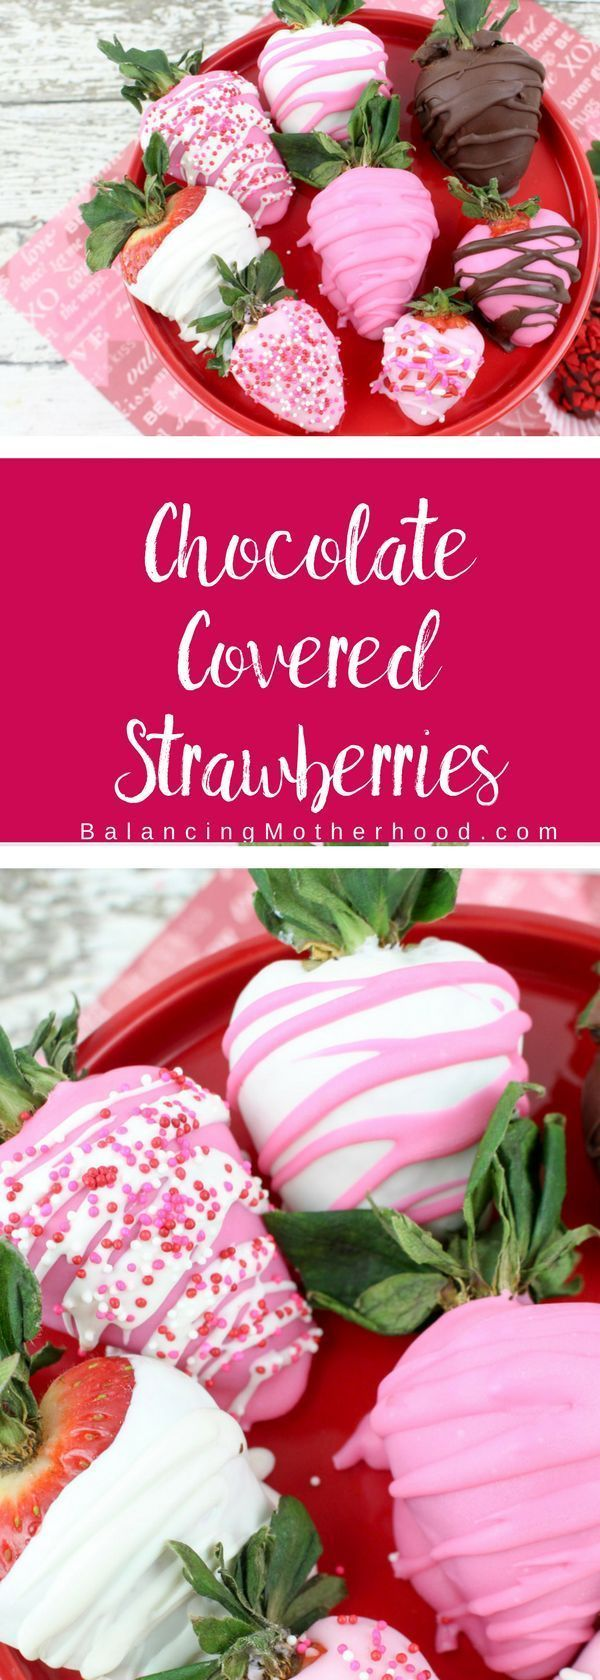 Photo of Chocolate Covered Strawberries |